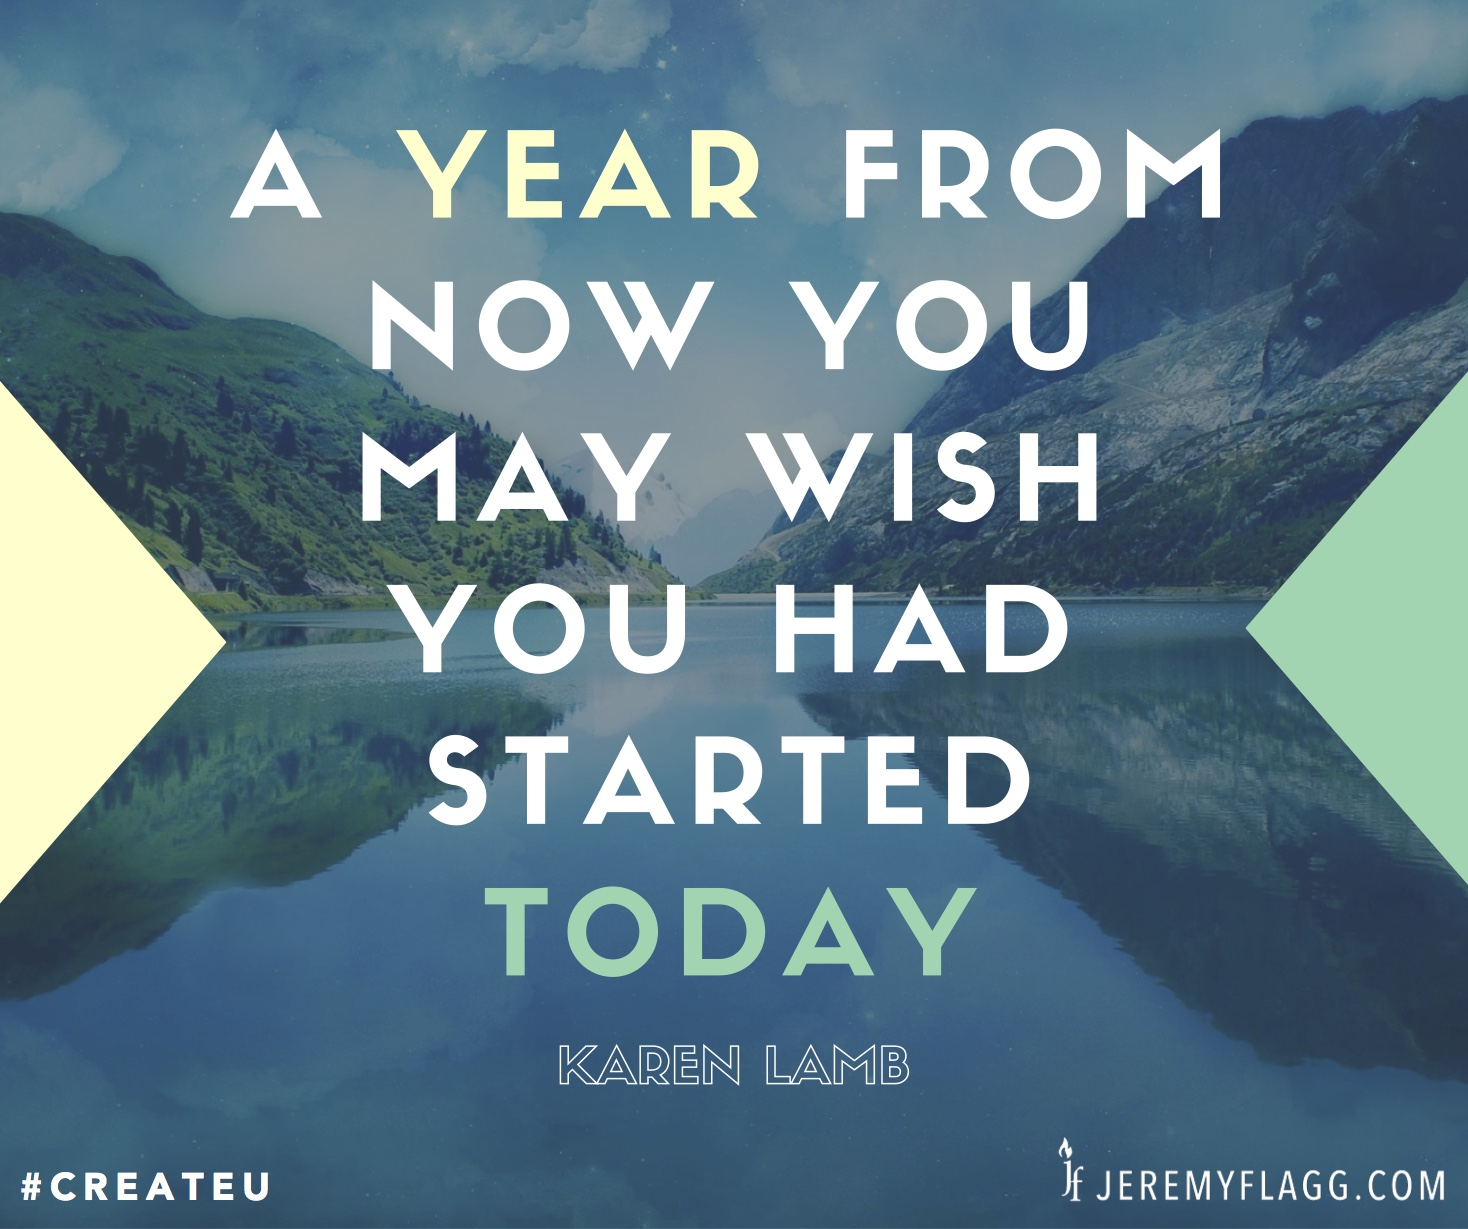 A-Year-From-Now-Karen-Lamb-quote-FB